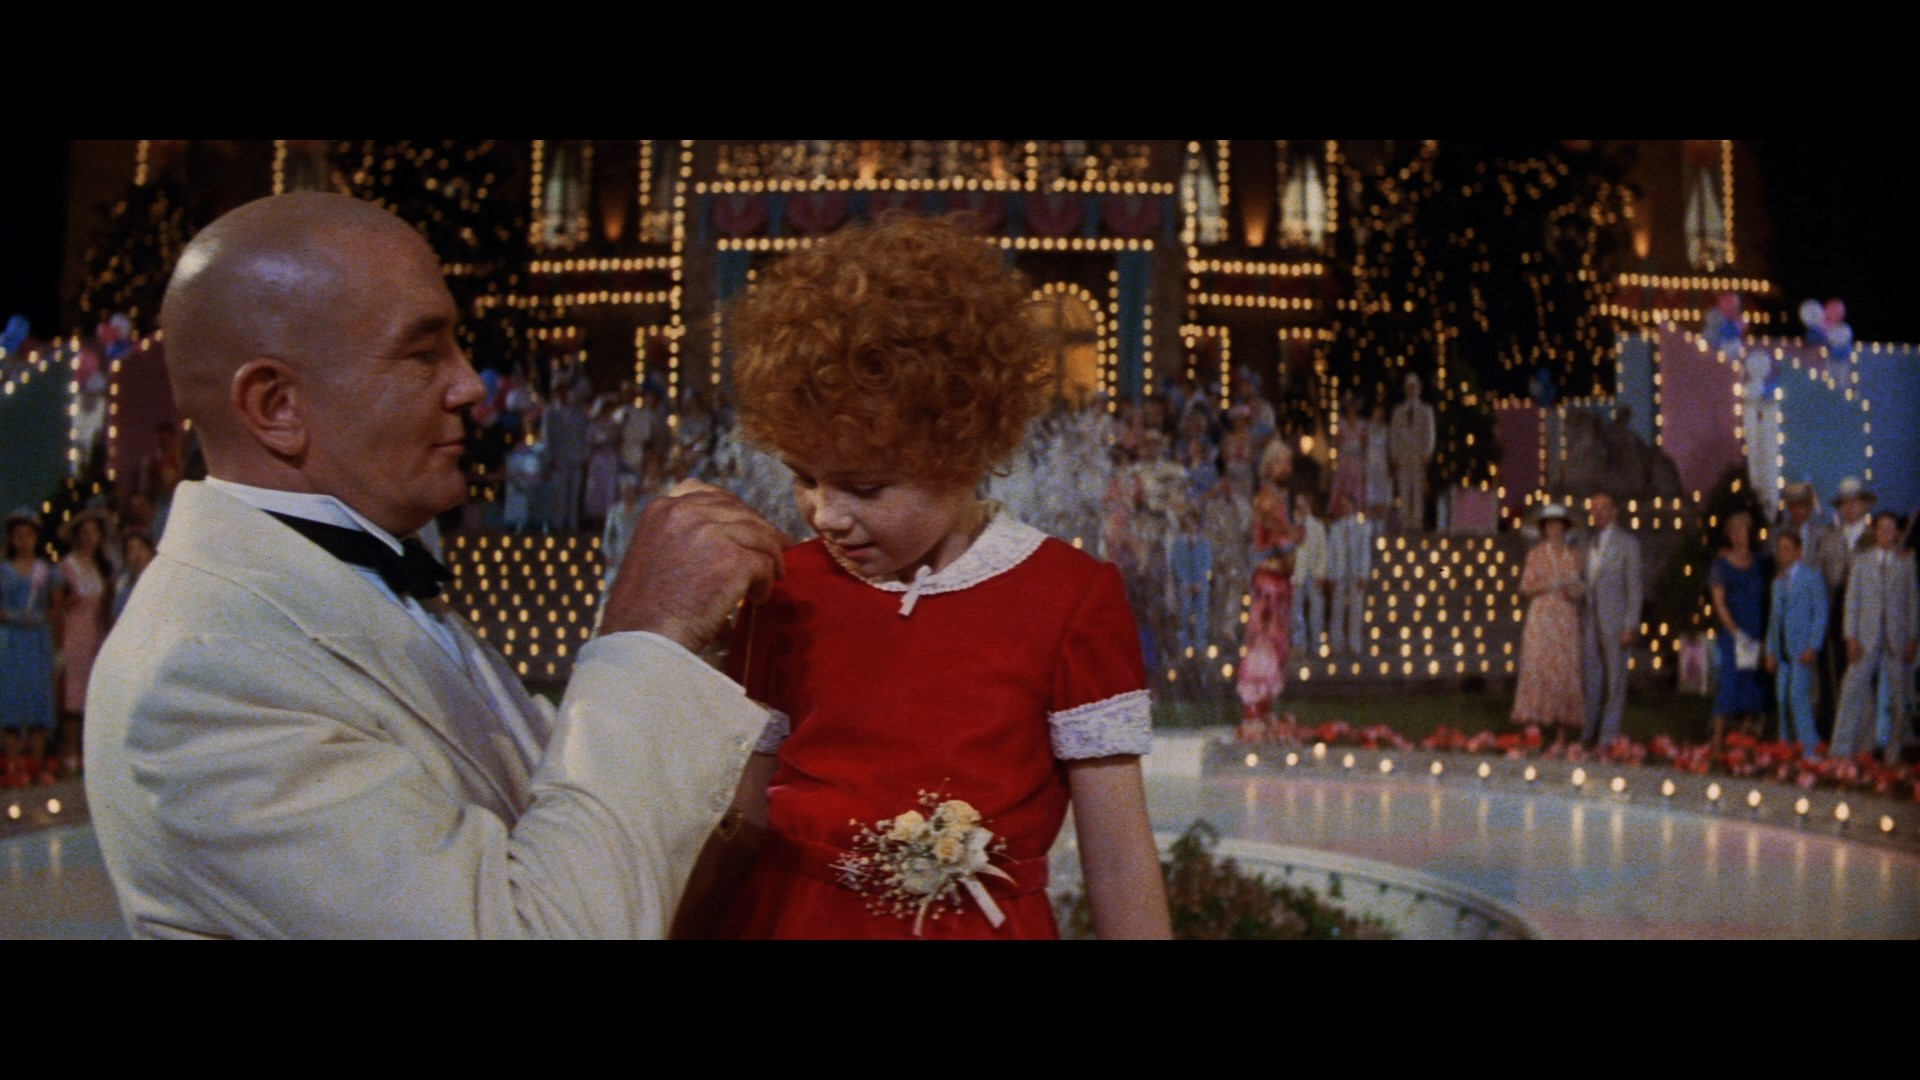 ANNIE (1982) - Daddy Warbucks' (Albert Finney) Tuxedo Jacket - Image 11 of 12